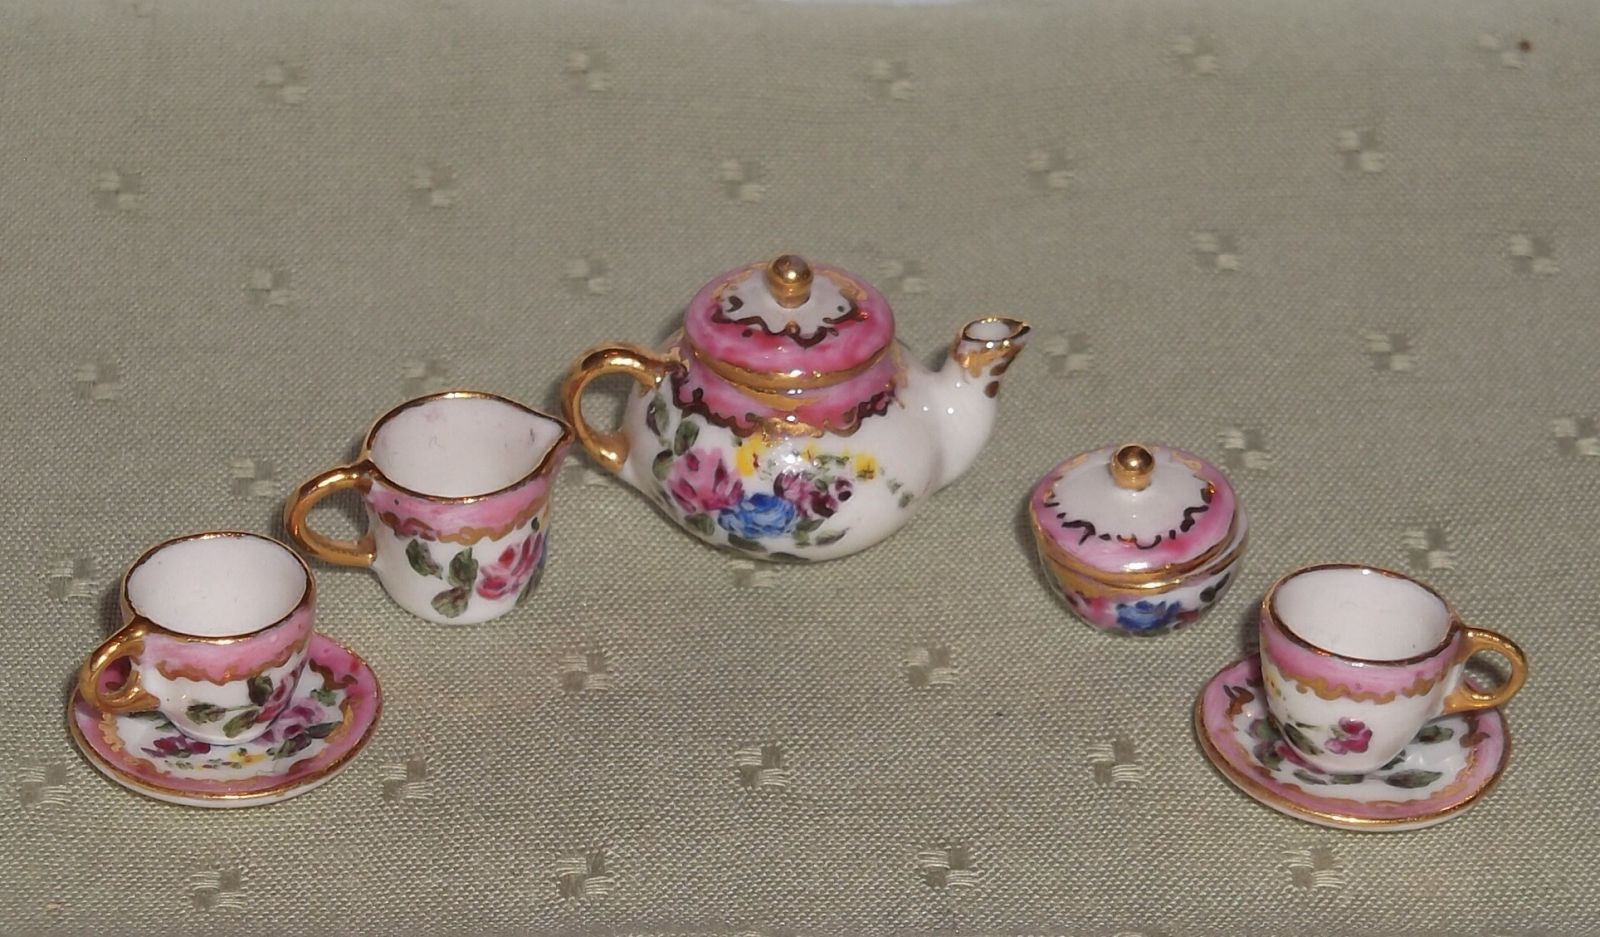 Tea set from Avon hand painted by Dineke Boektje